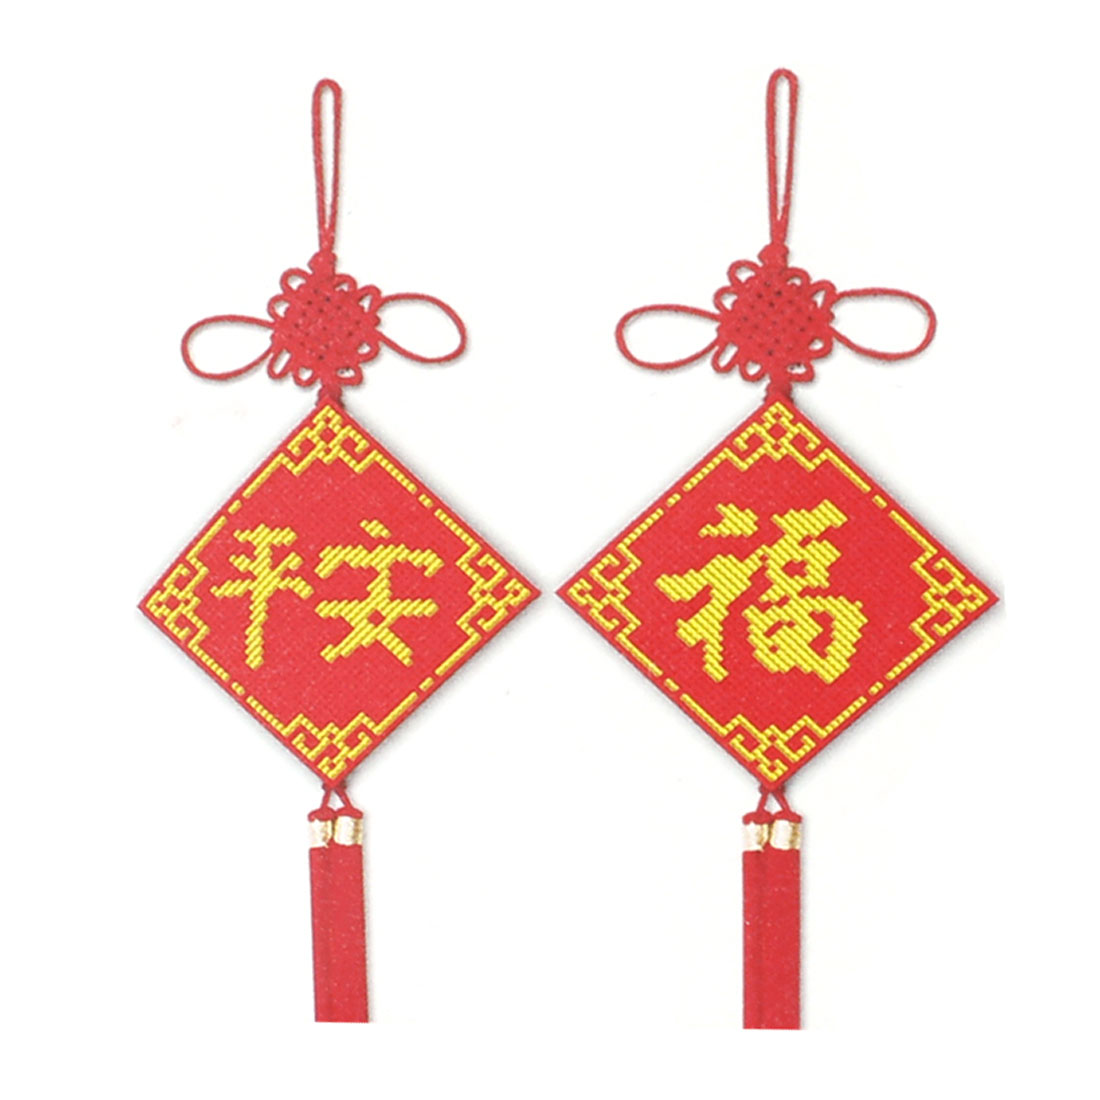 Red Yellow Chinese Characters Safeness Lucky FU Counted Cross Stitch Kit 2PCS